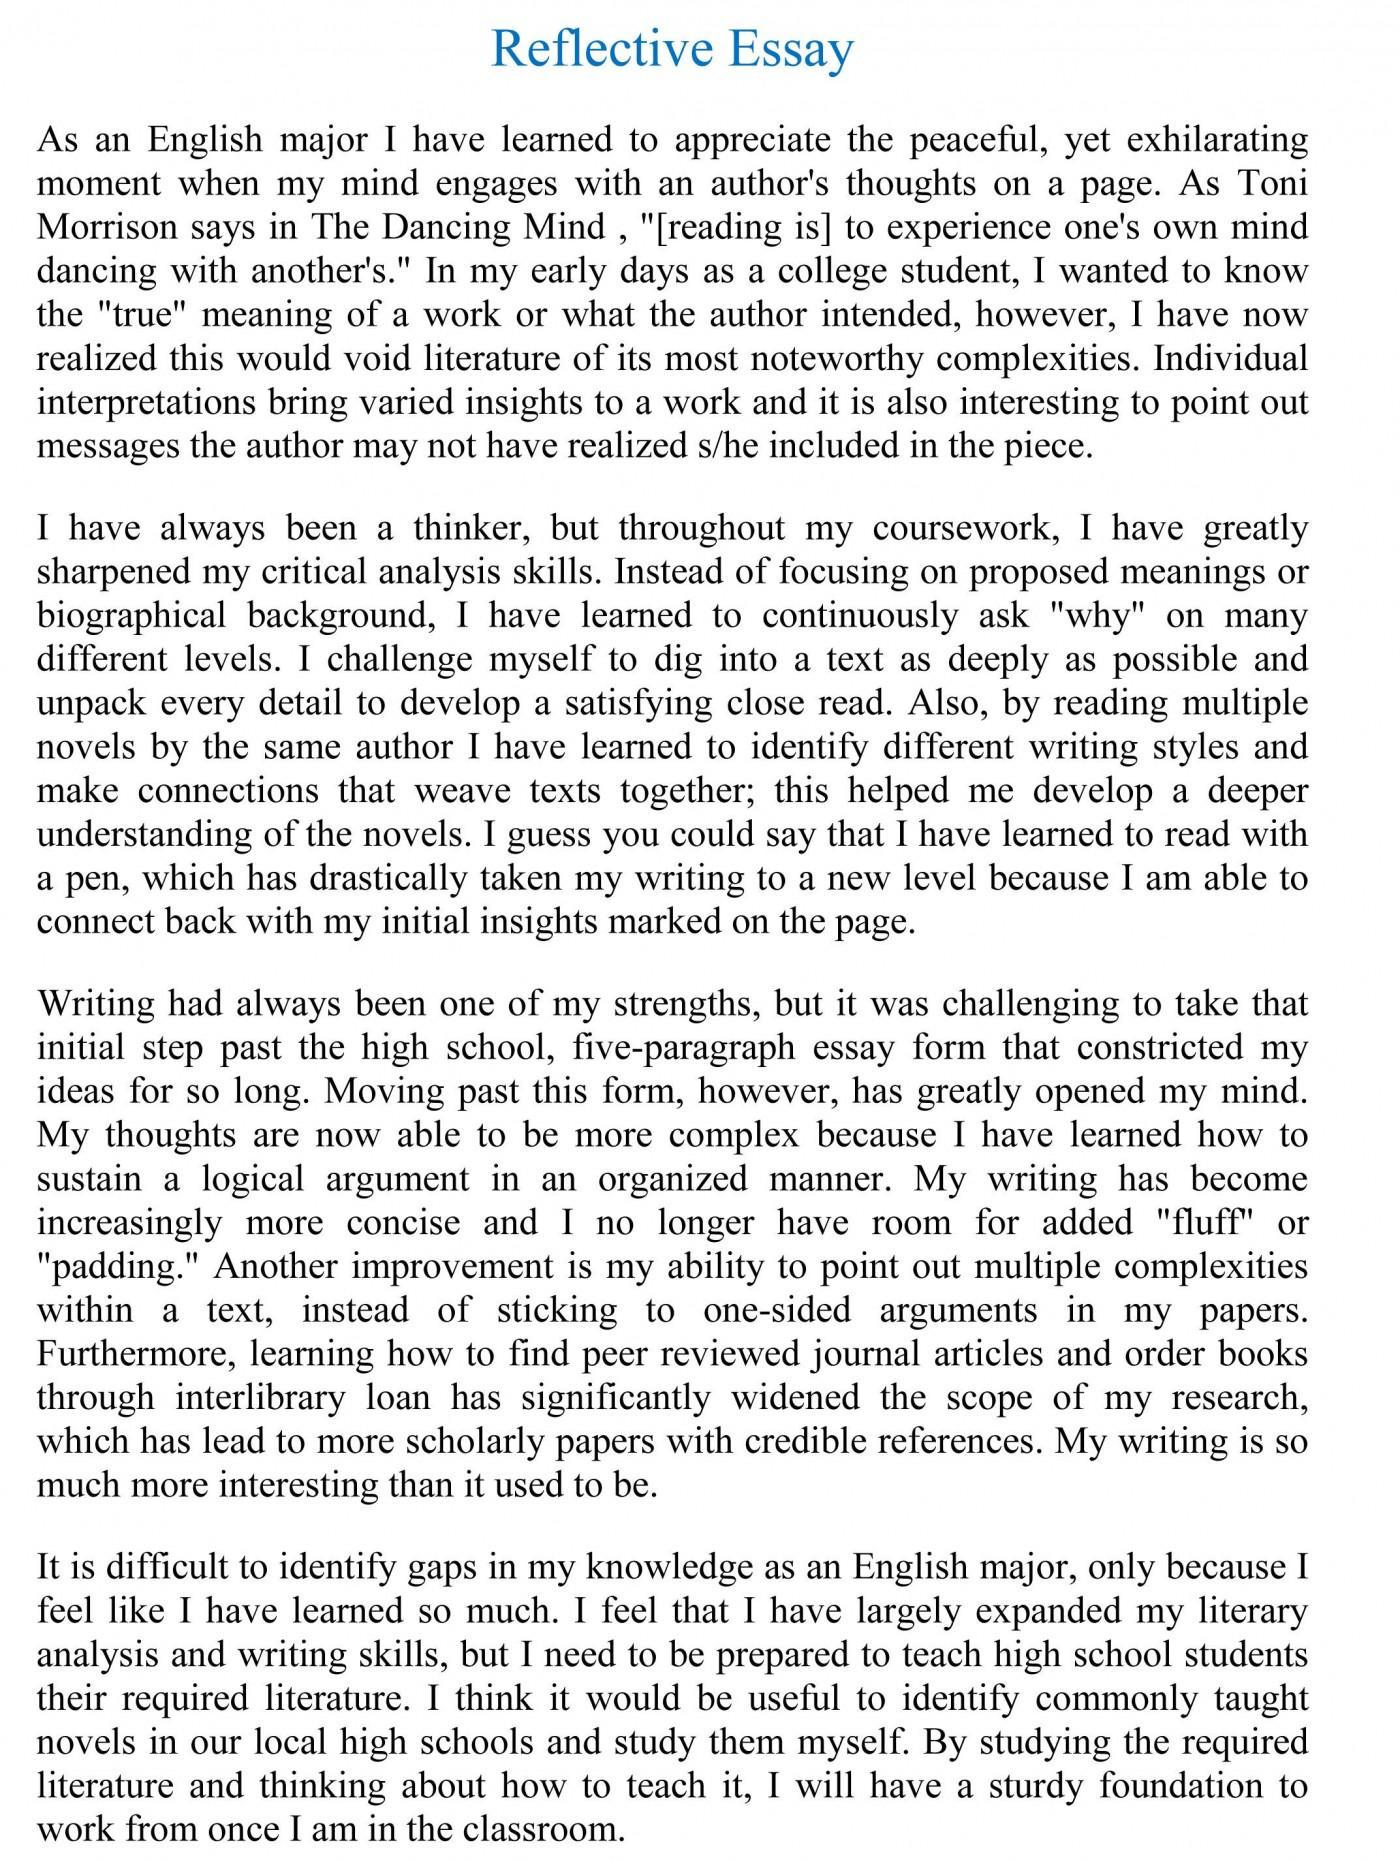 004 Essay Example Unforgettable Reflective Examples About Life Pdf High School Students Apa 1400